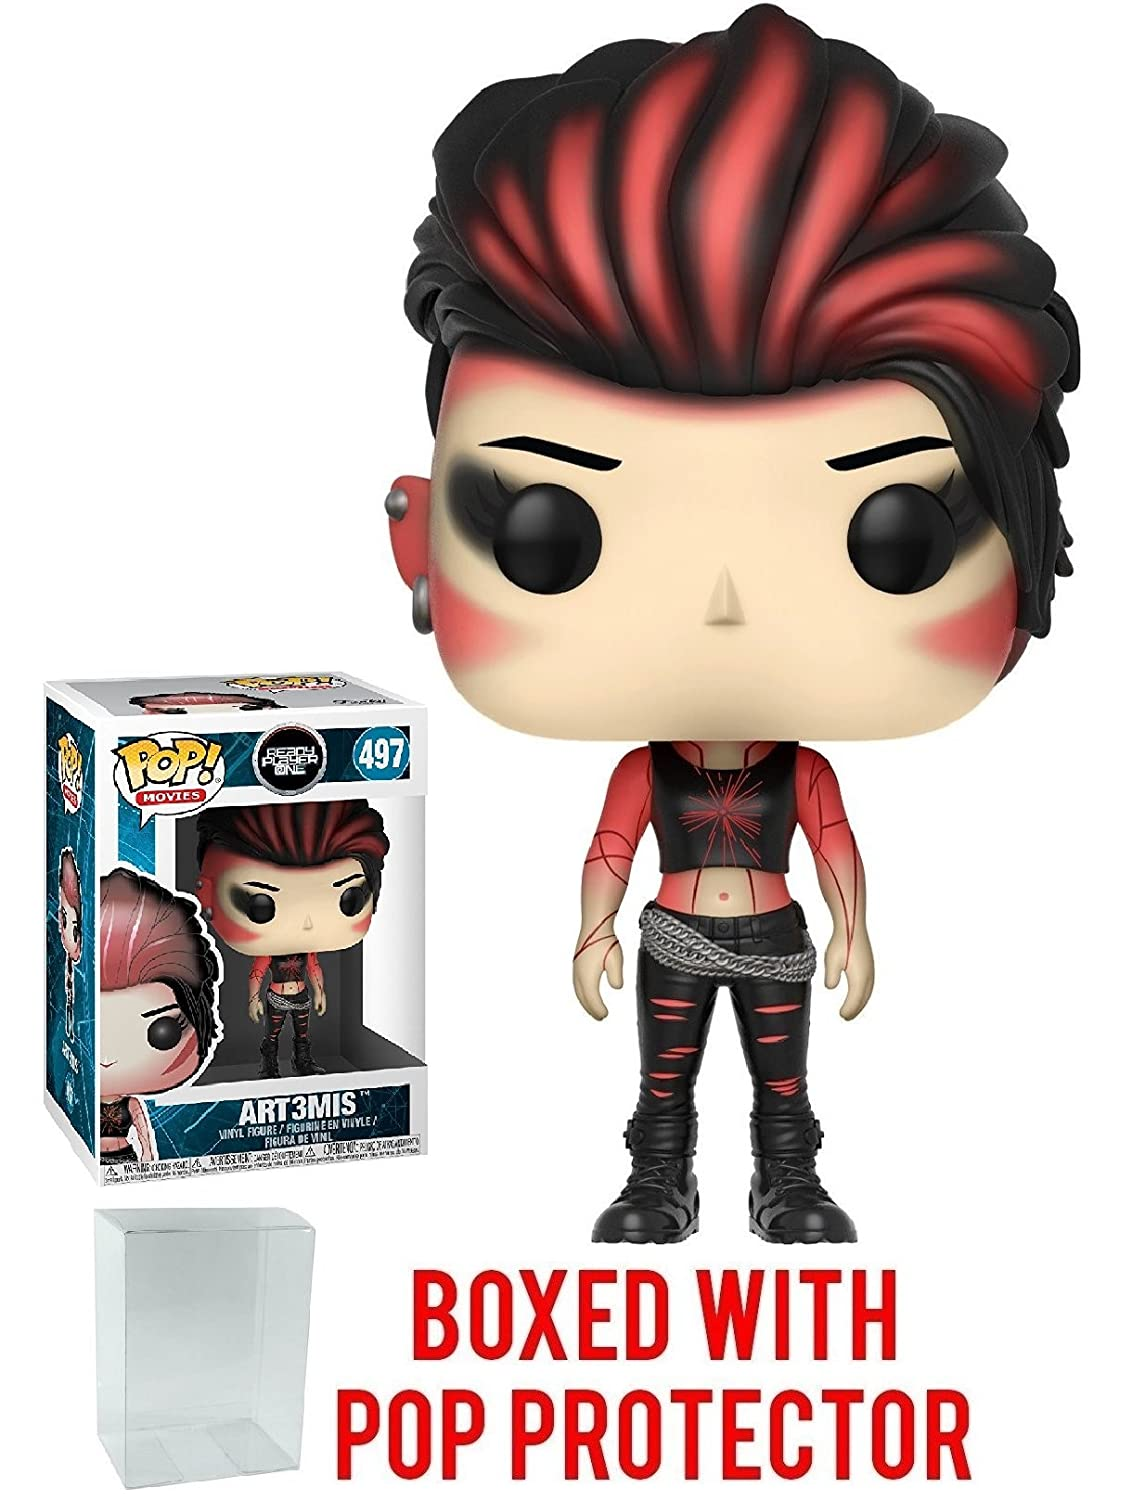 Bundled with Pop Box Protector Case Movies: Ready Player One Funko Pop Art3mis Vinyl Figure